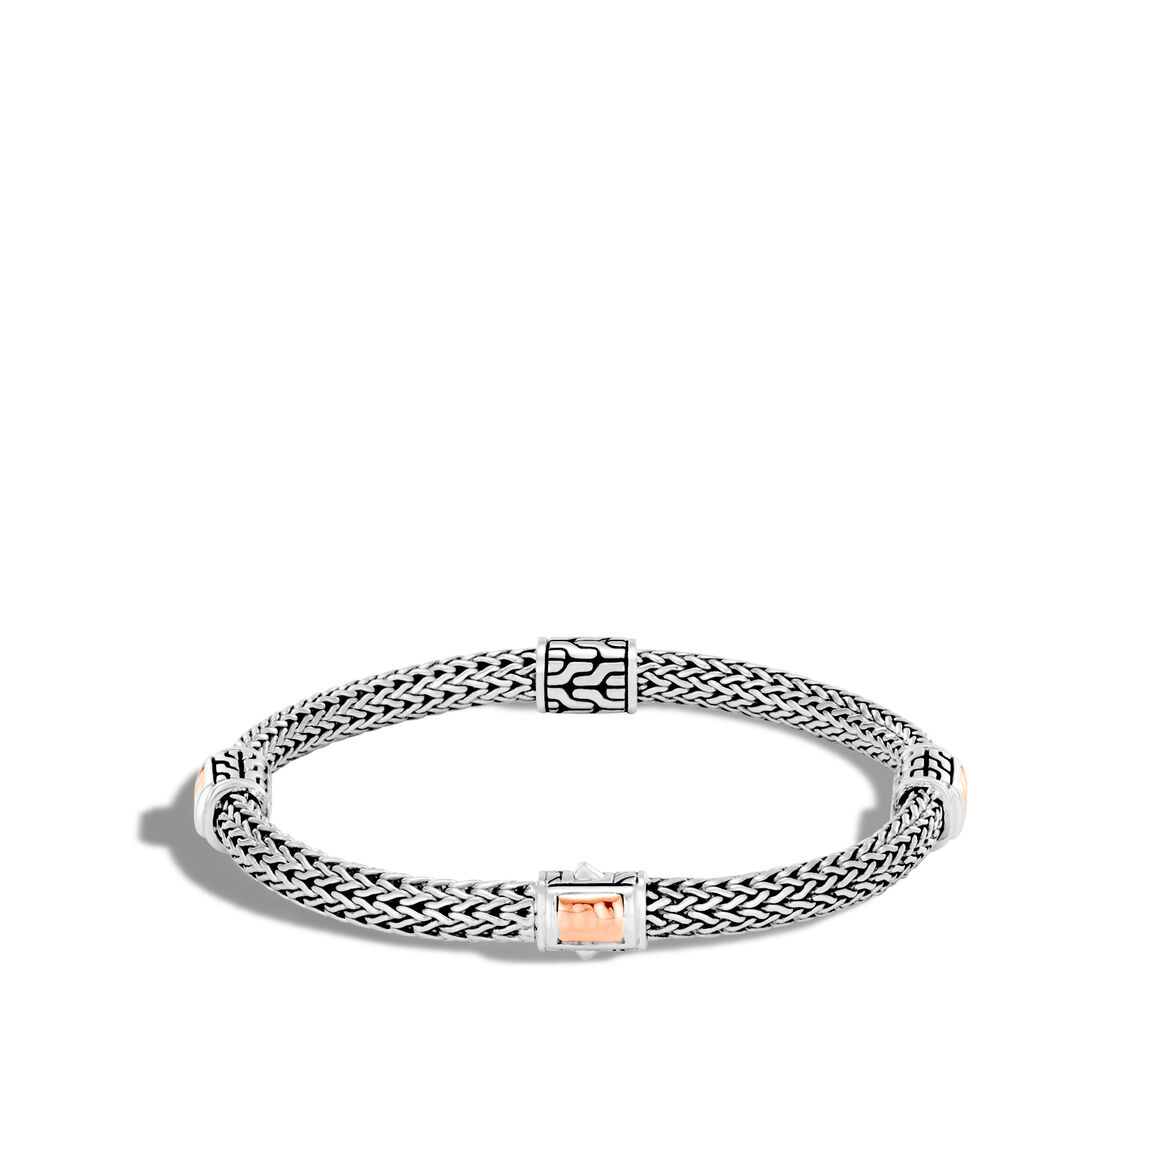 Classic Chain 5MM Hammered Station Bracelet, Silver, 18K Rose